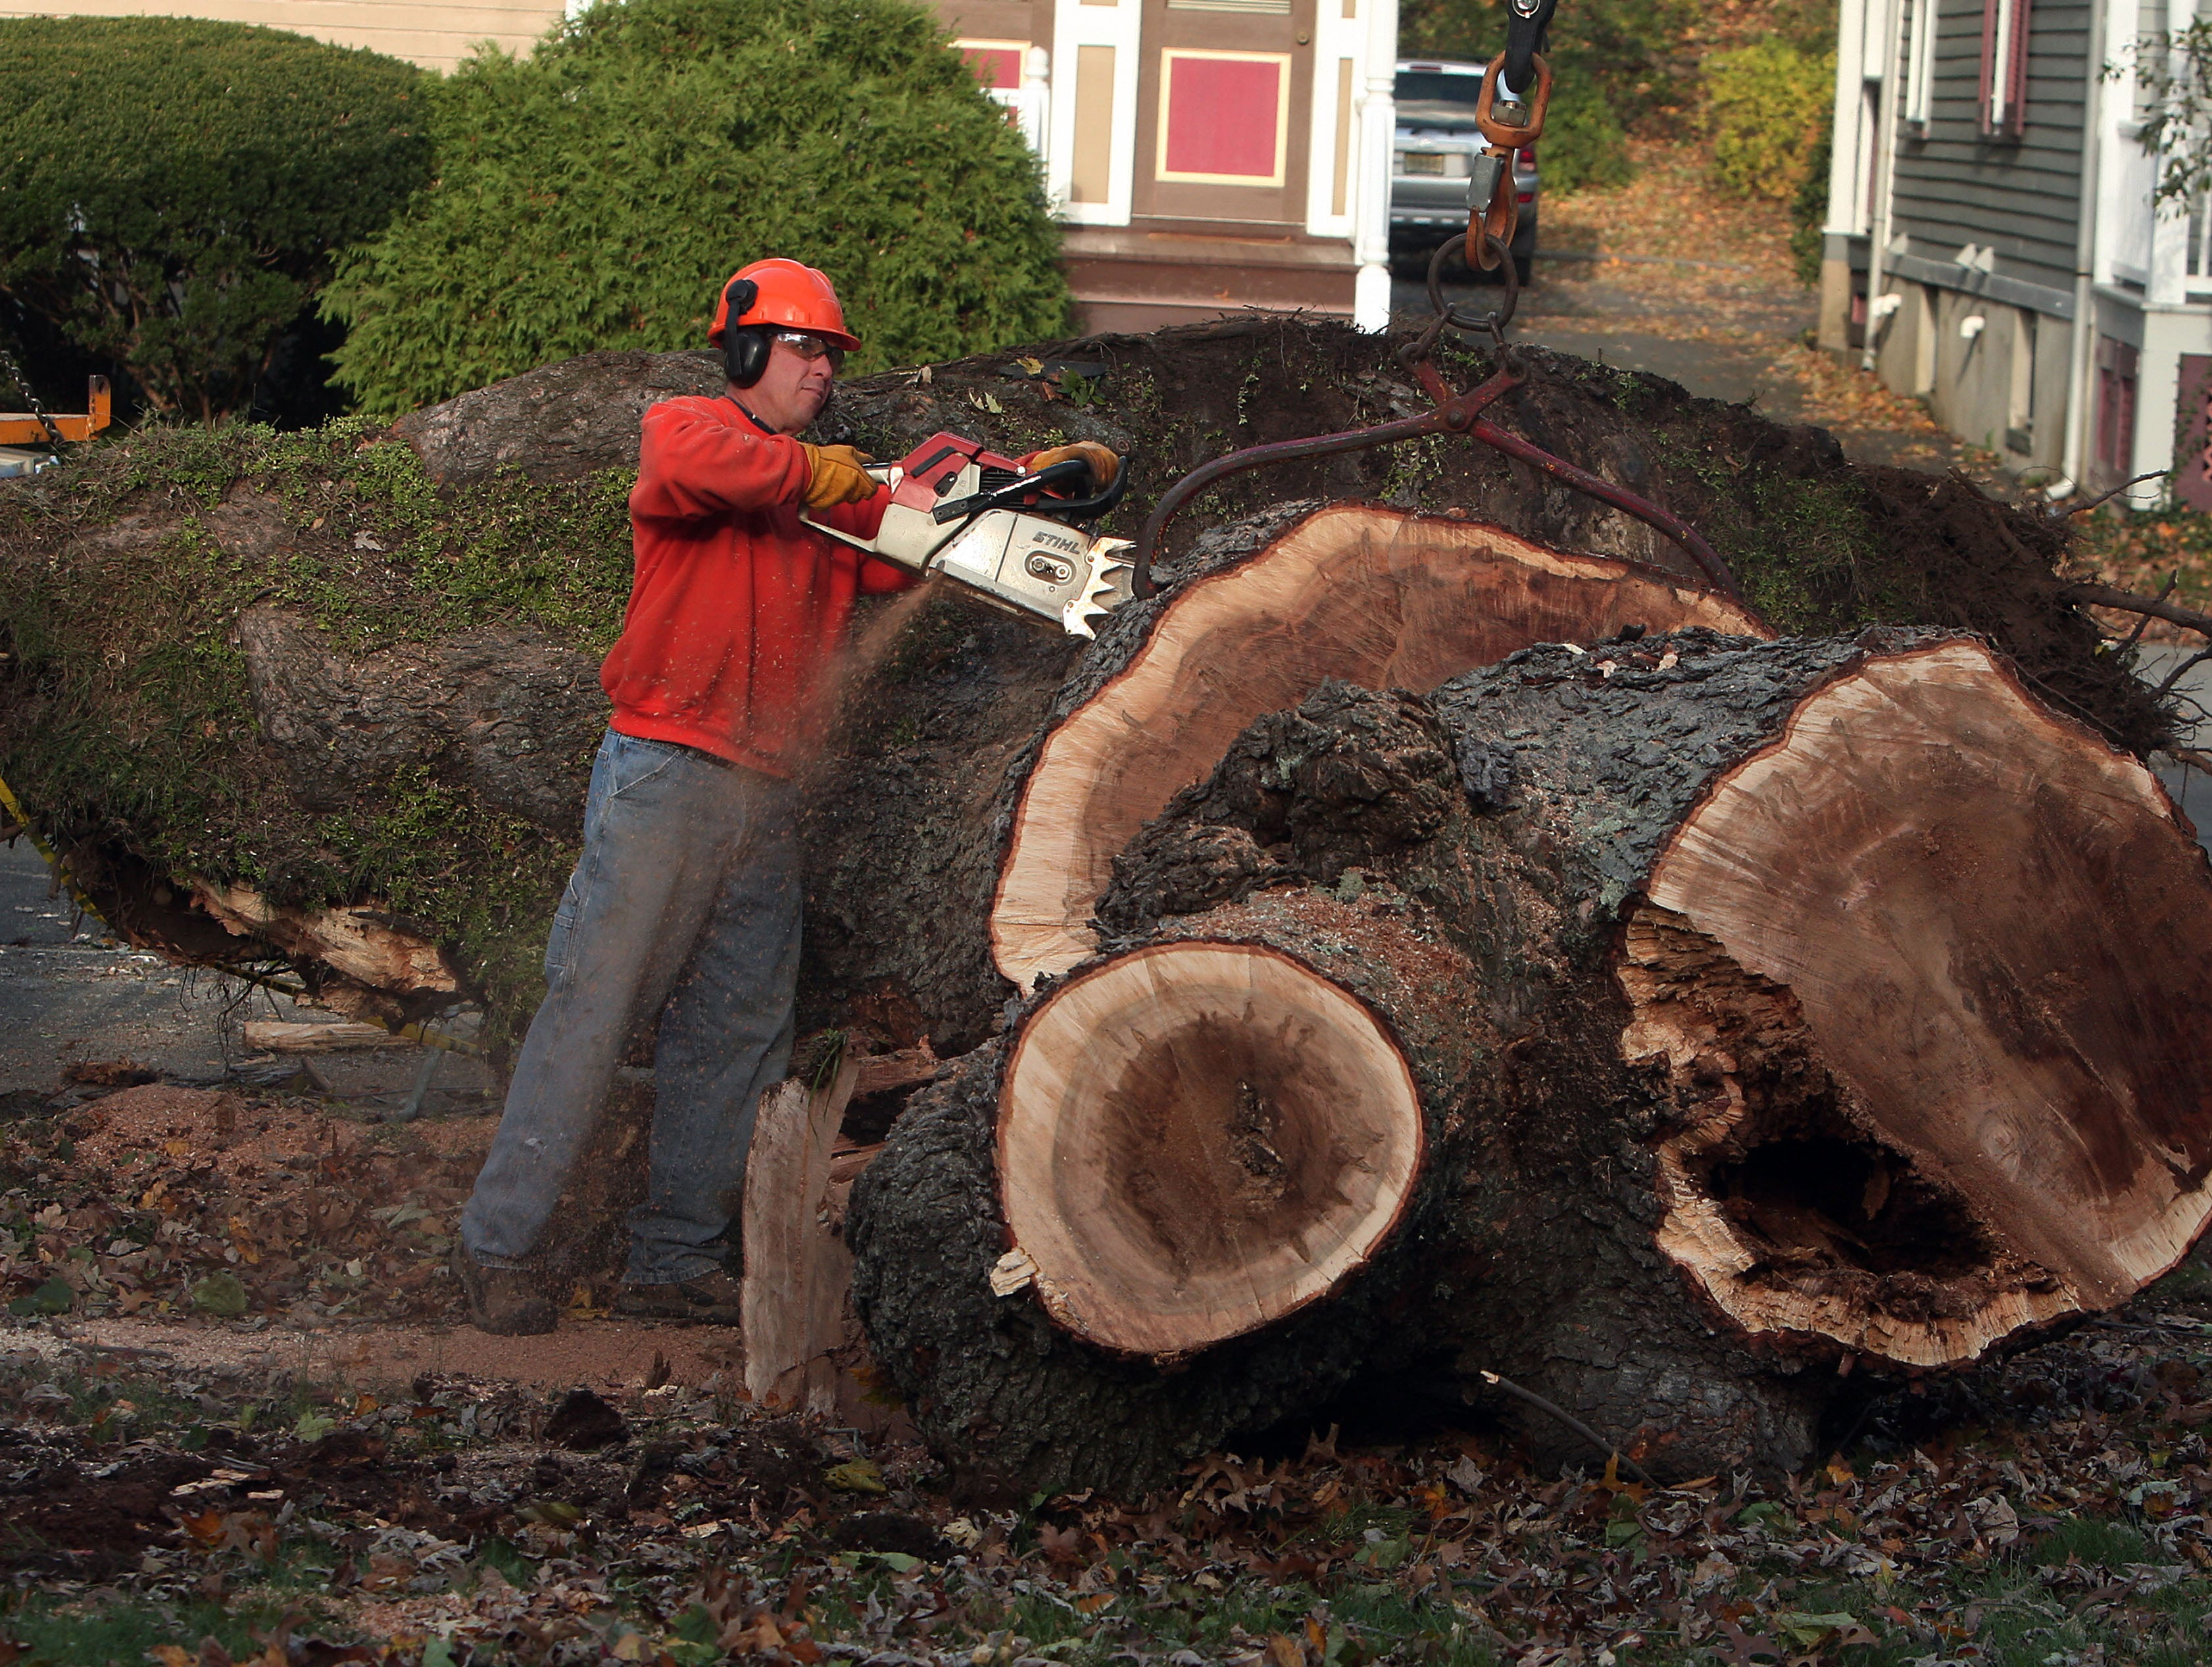 Morristown, N.J.- November 3, 2012--Troy Tuttle of the Morristown (NJ) Shade Tree Department uses a chain saw to cut up a 100-year-old silver maple that fell onto a house on Wetmore Avenue due to heavy winds from Hurricane Sandy. 